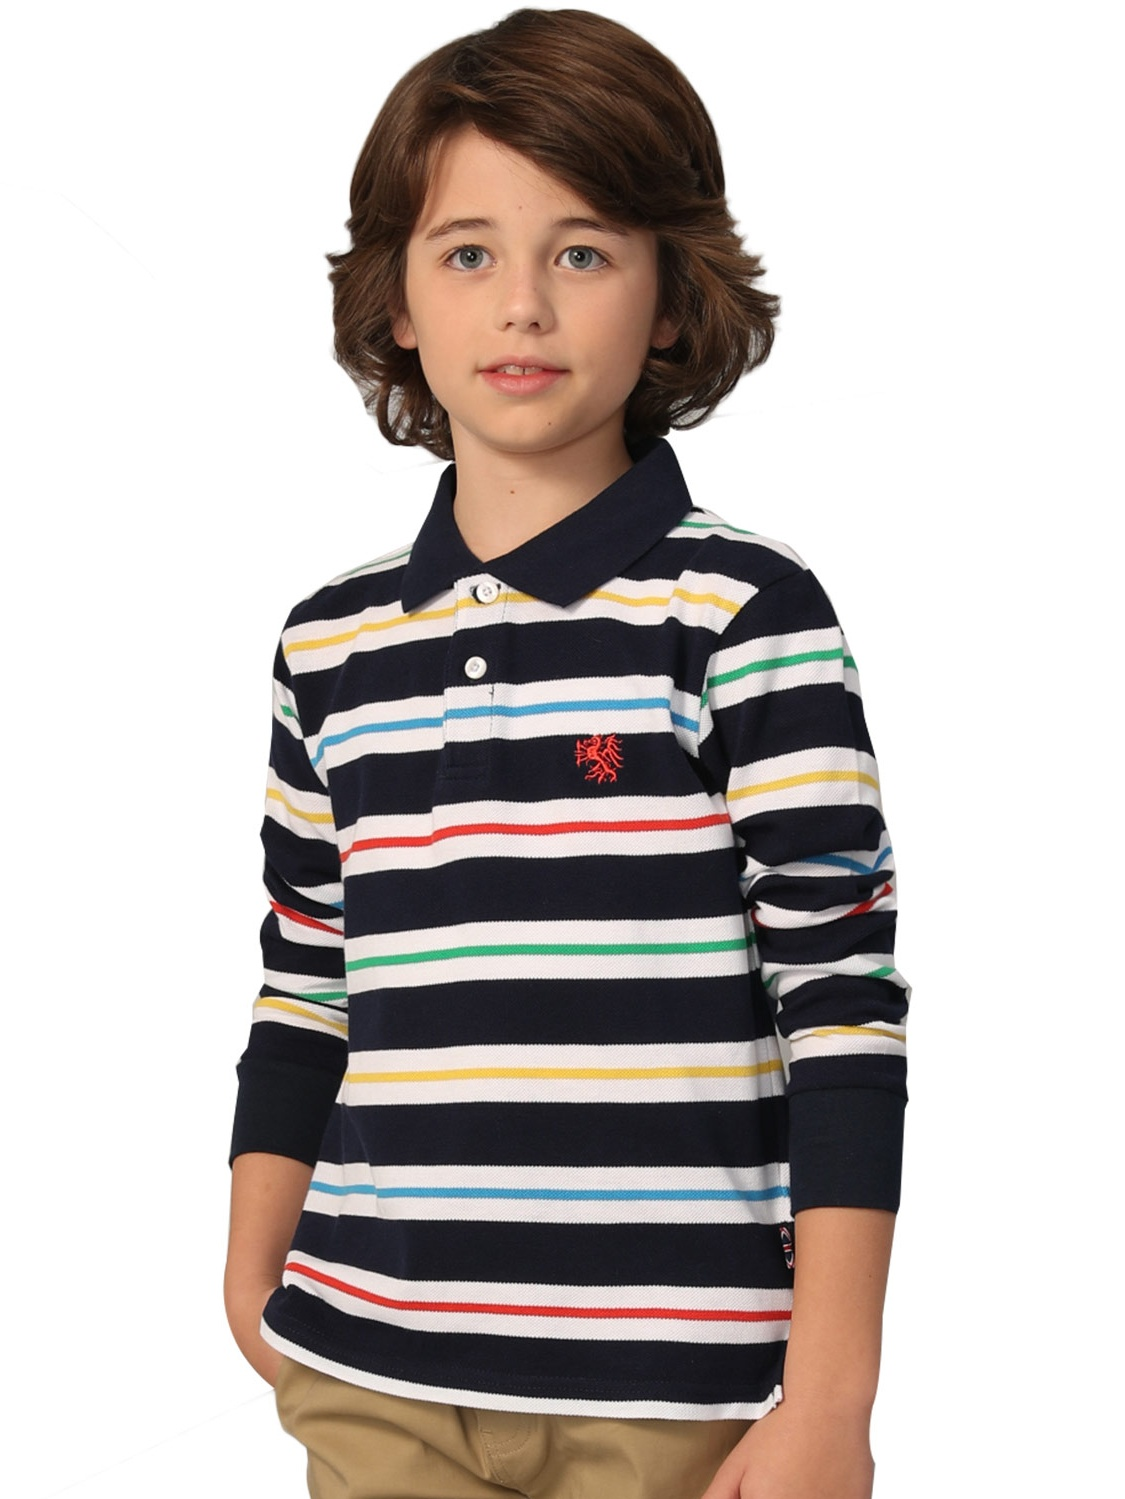 Leo&Lily Boys' Long Sleeves Striped Cardigan Rugby Polo Shirt NAVY